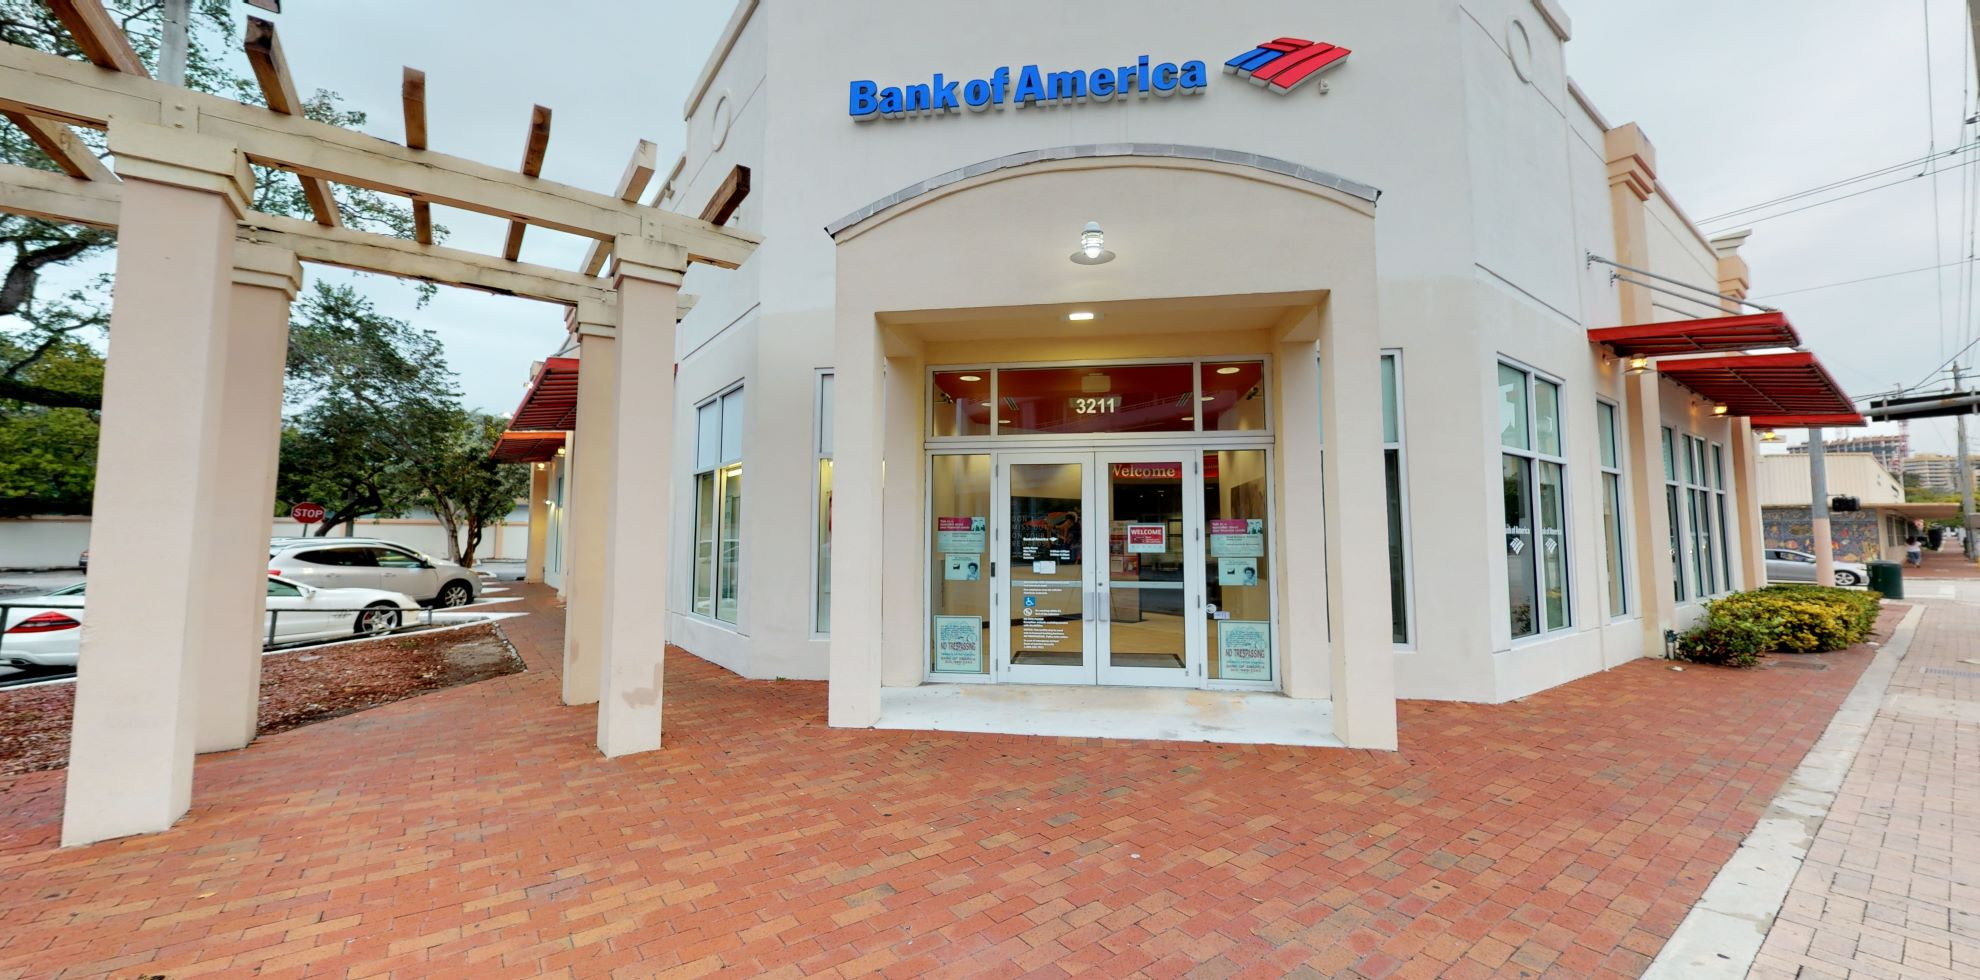 Bank of America financial center with walk-up ATM | 3211 Grand Ave, Coconut Grove, FL 33133